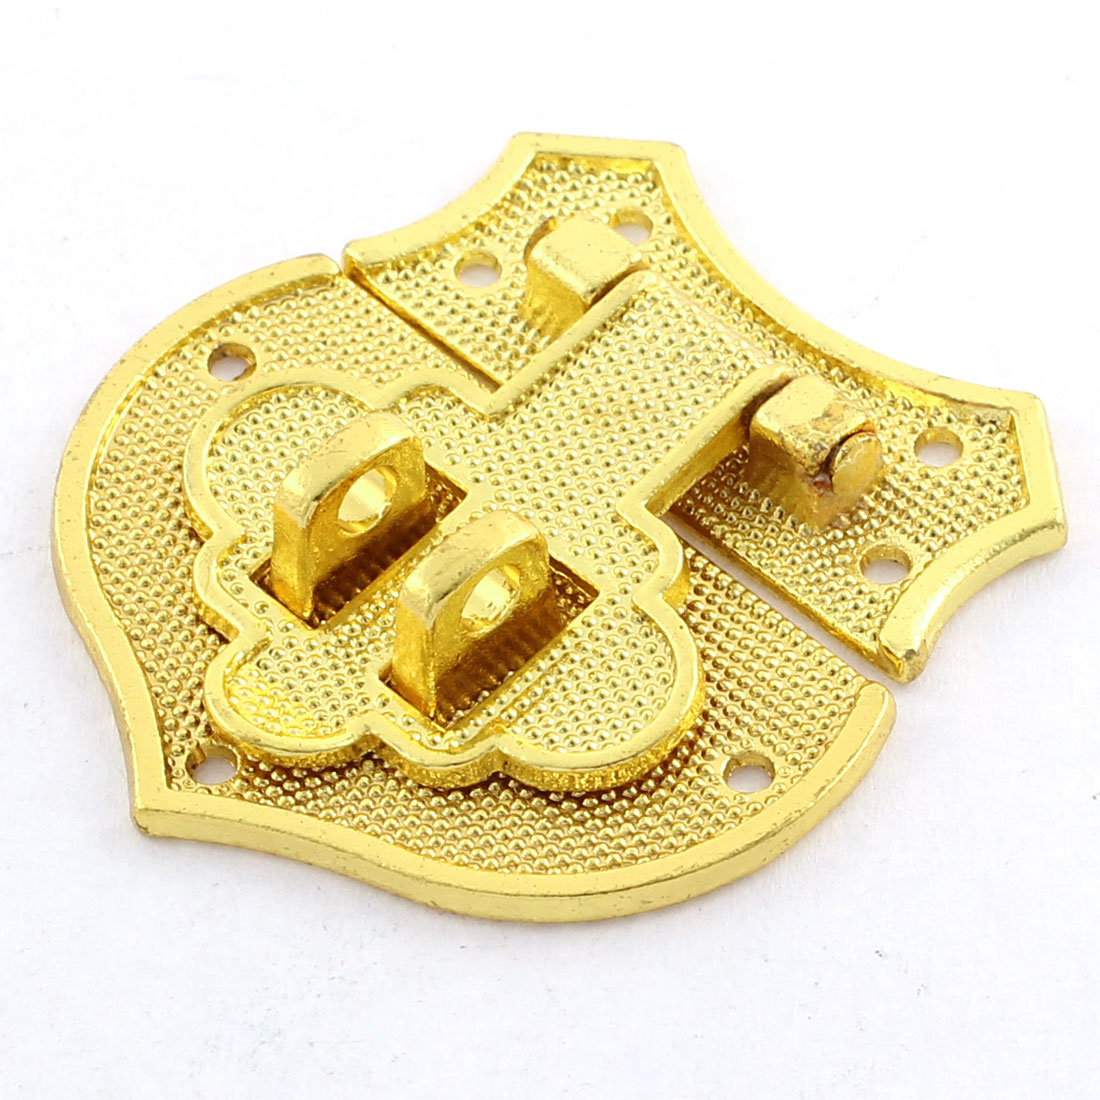 Gold Tone Alloy Heart Shaped 7 Fixing Holes Gift Jewelry Wooden Box Latches